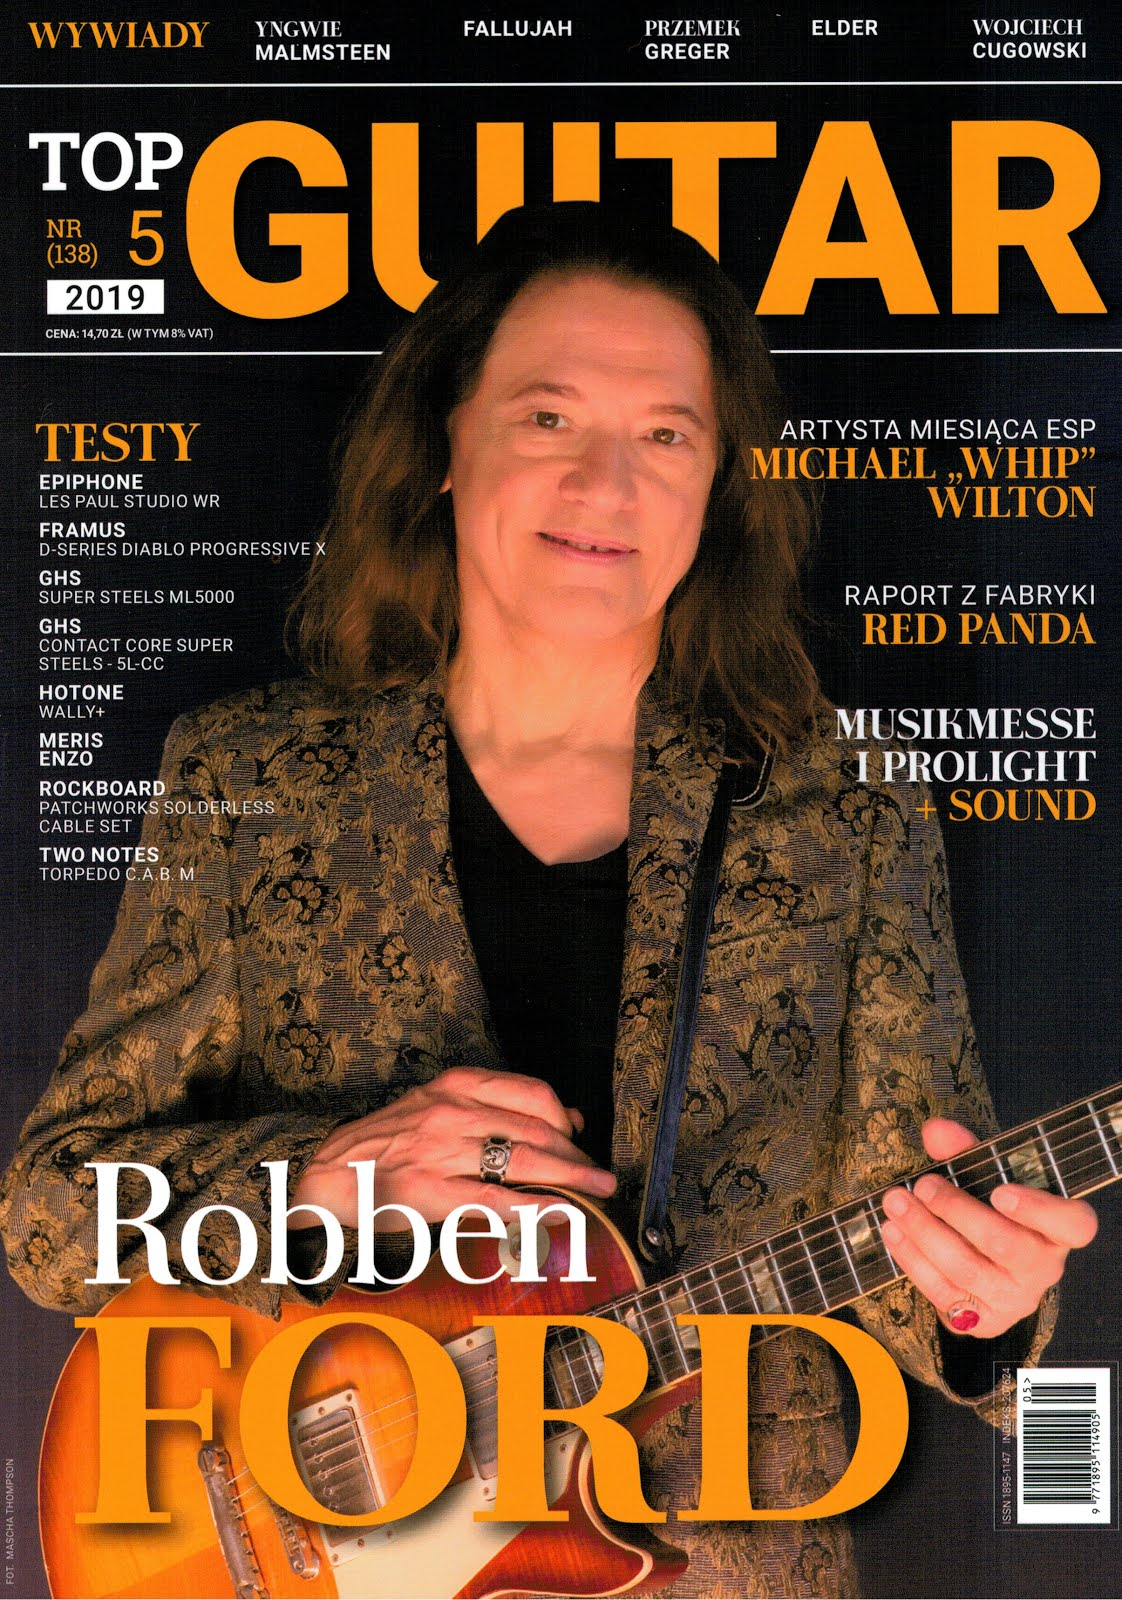 TOP GUITAR 5/2019, str. 44-45